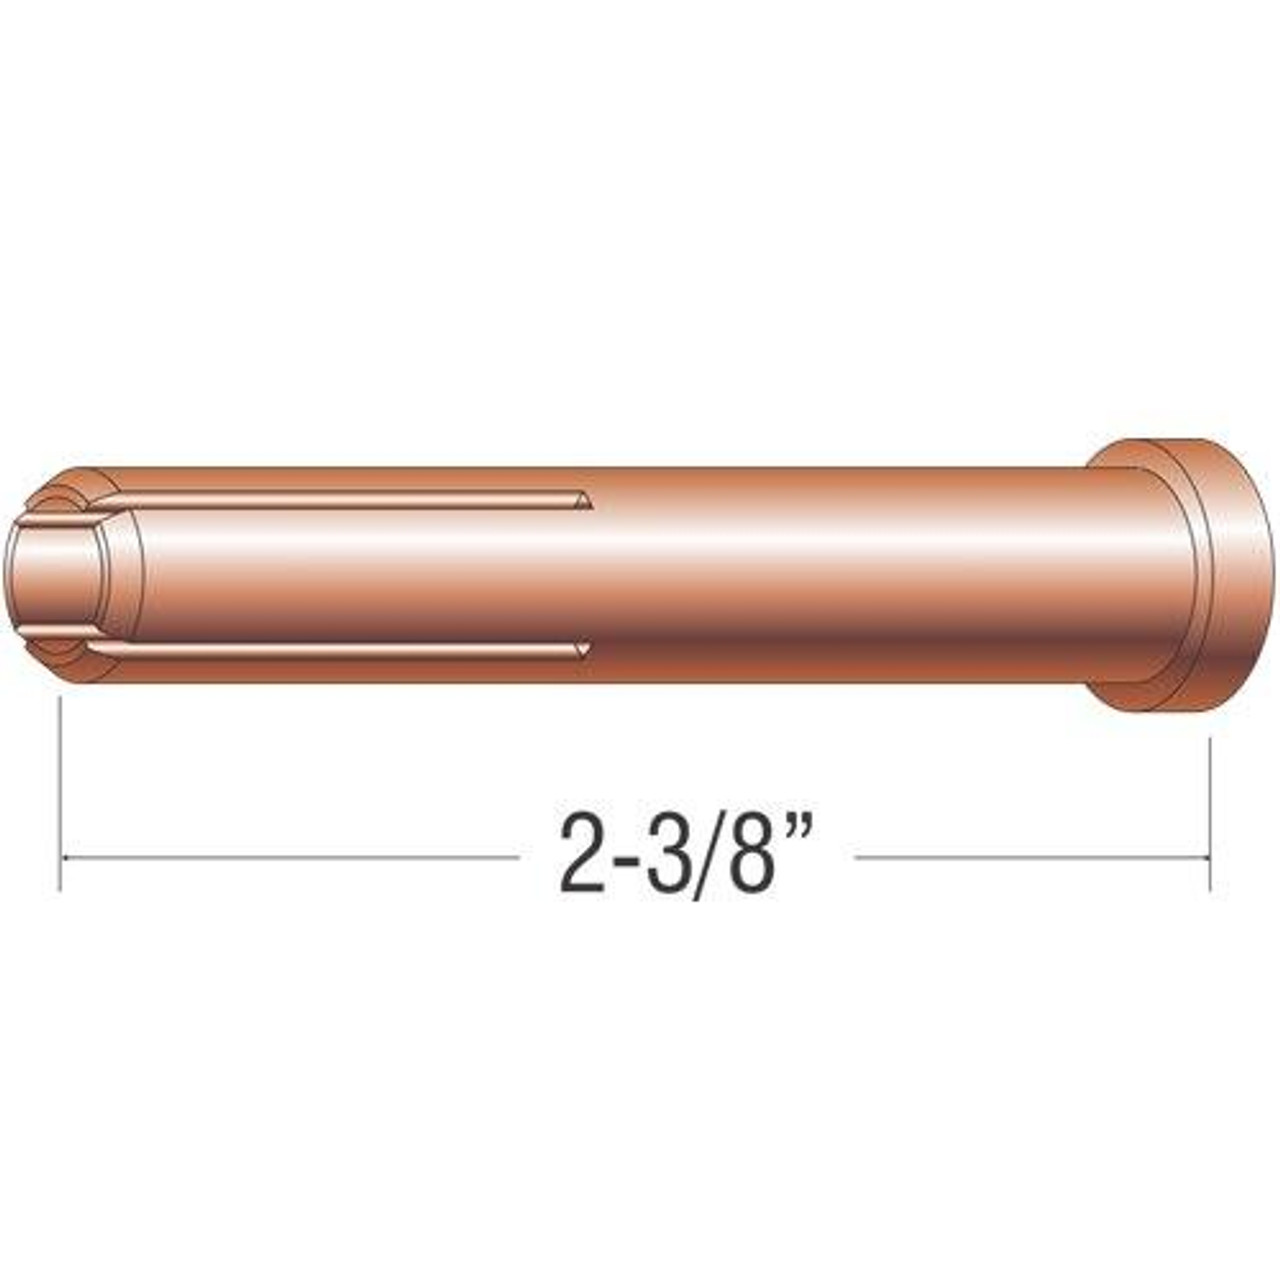 Profax 85Z14 Collet 1/16 12 TIG Torch - 2 Pack